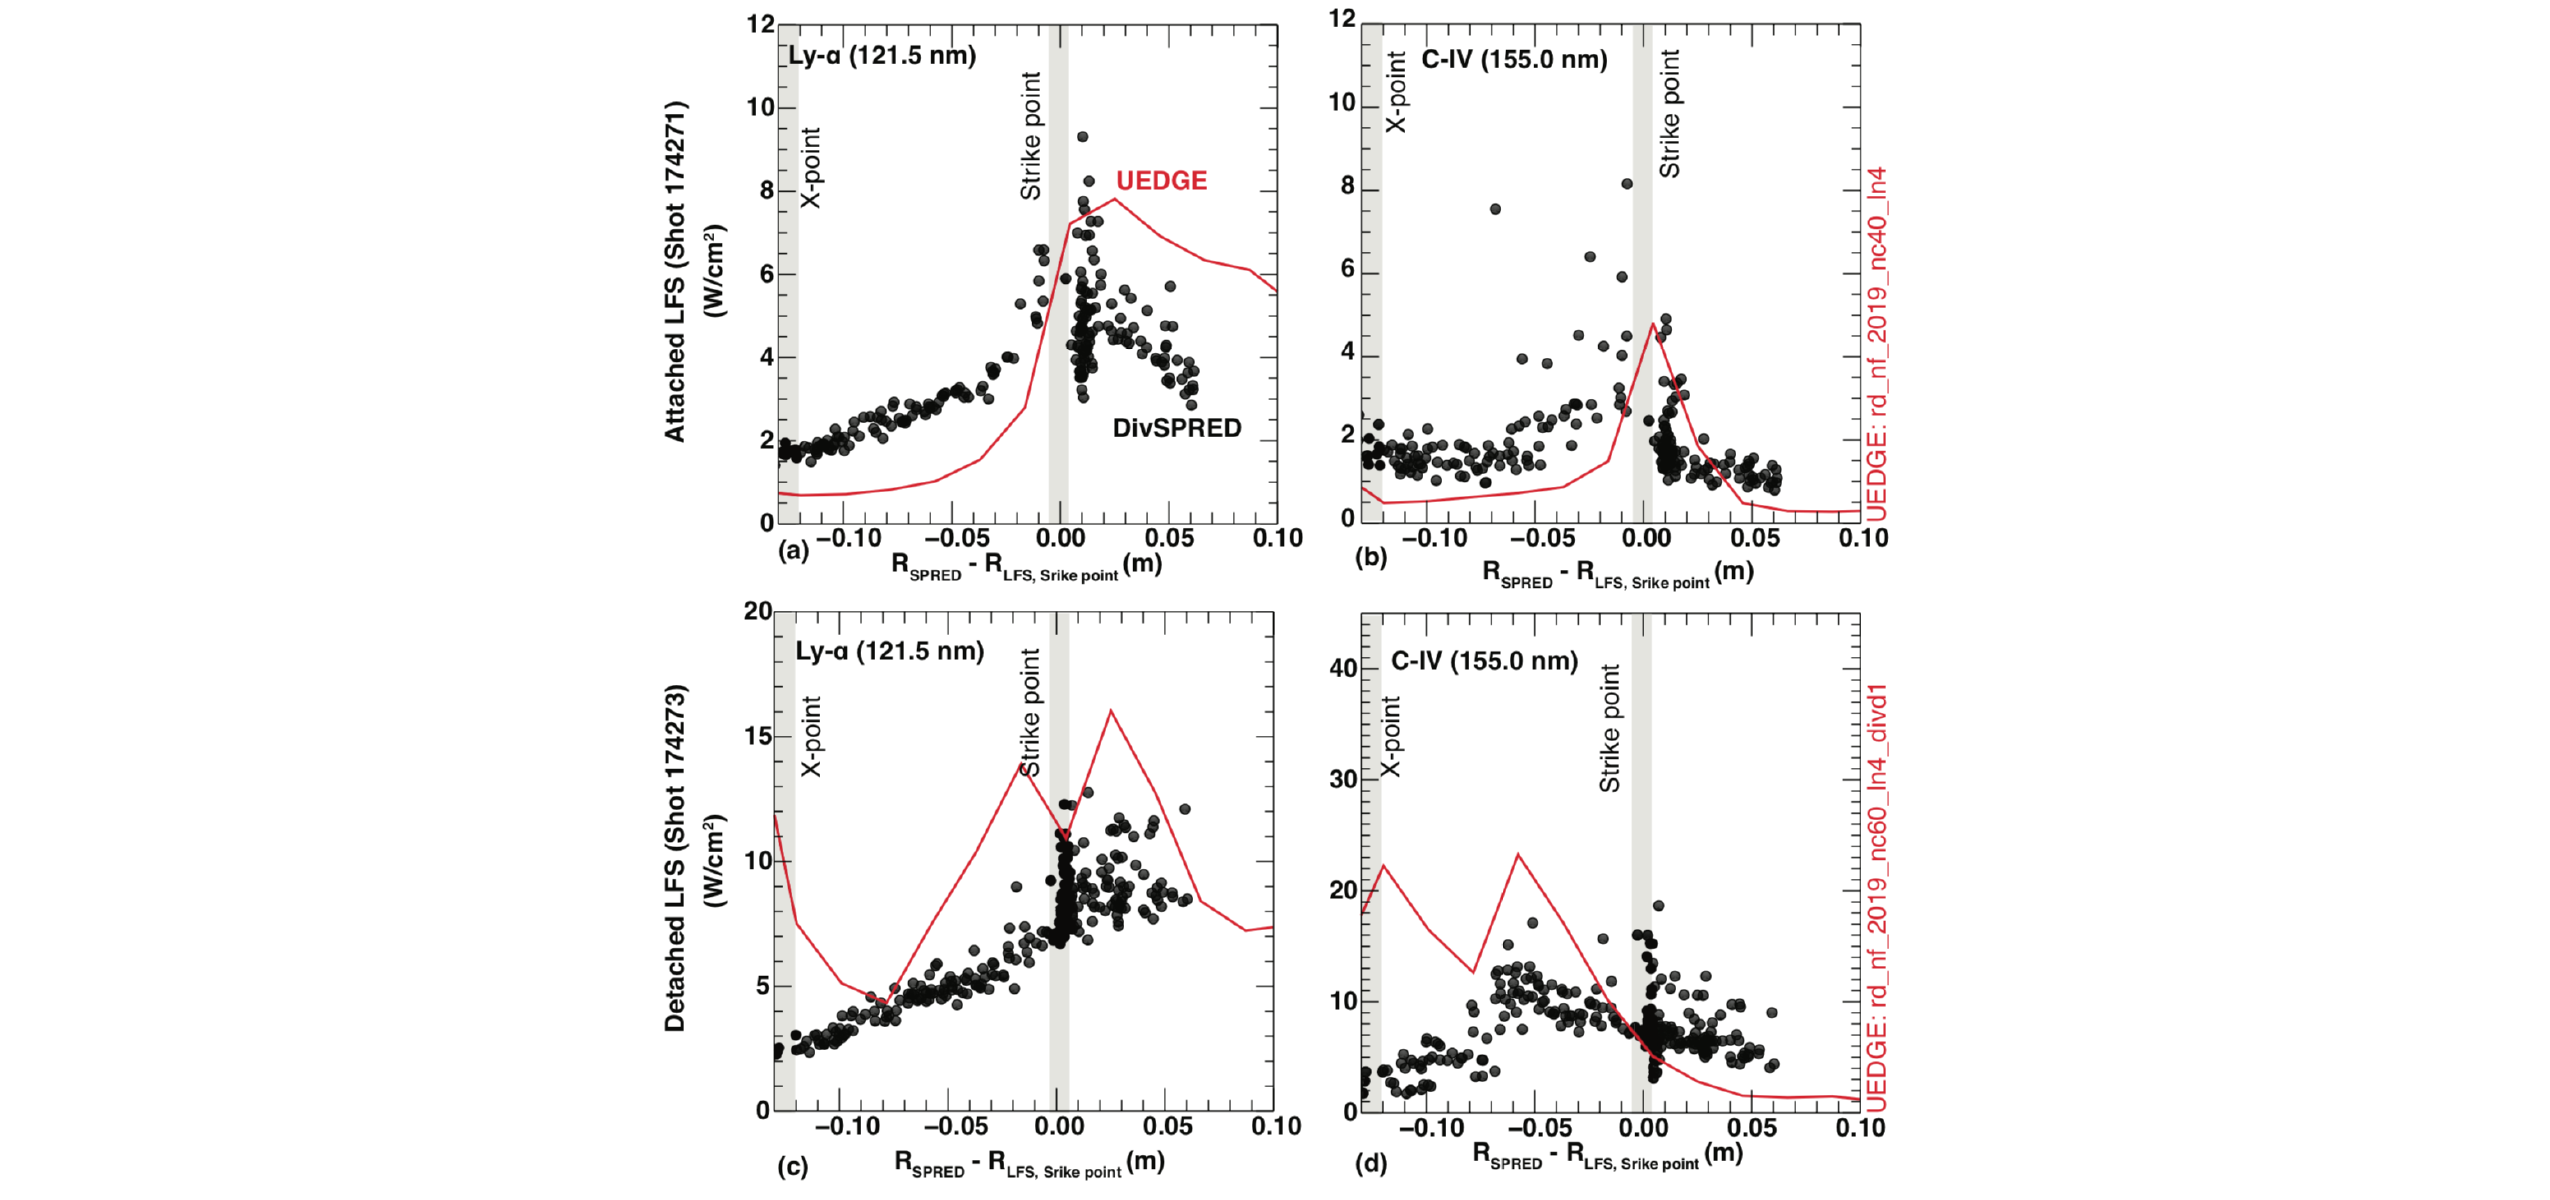 Comparison of constituent species emission in the EUV/EUV (dots) with UEDGE fluid simulations (lines) in medium density attached (top) and detached (bottom) conditions showing acceptable agreement in attached conditions (top) but overpredictions in emission height while underpredicting radial emission extent in detached conditions. Figure adapted from (4).